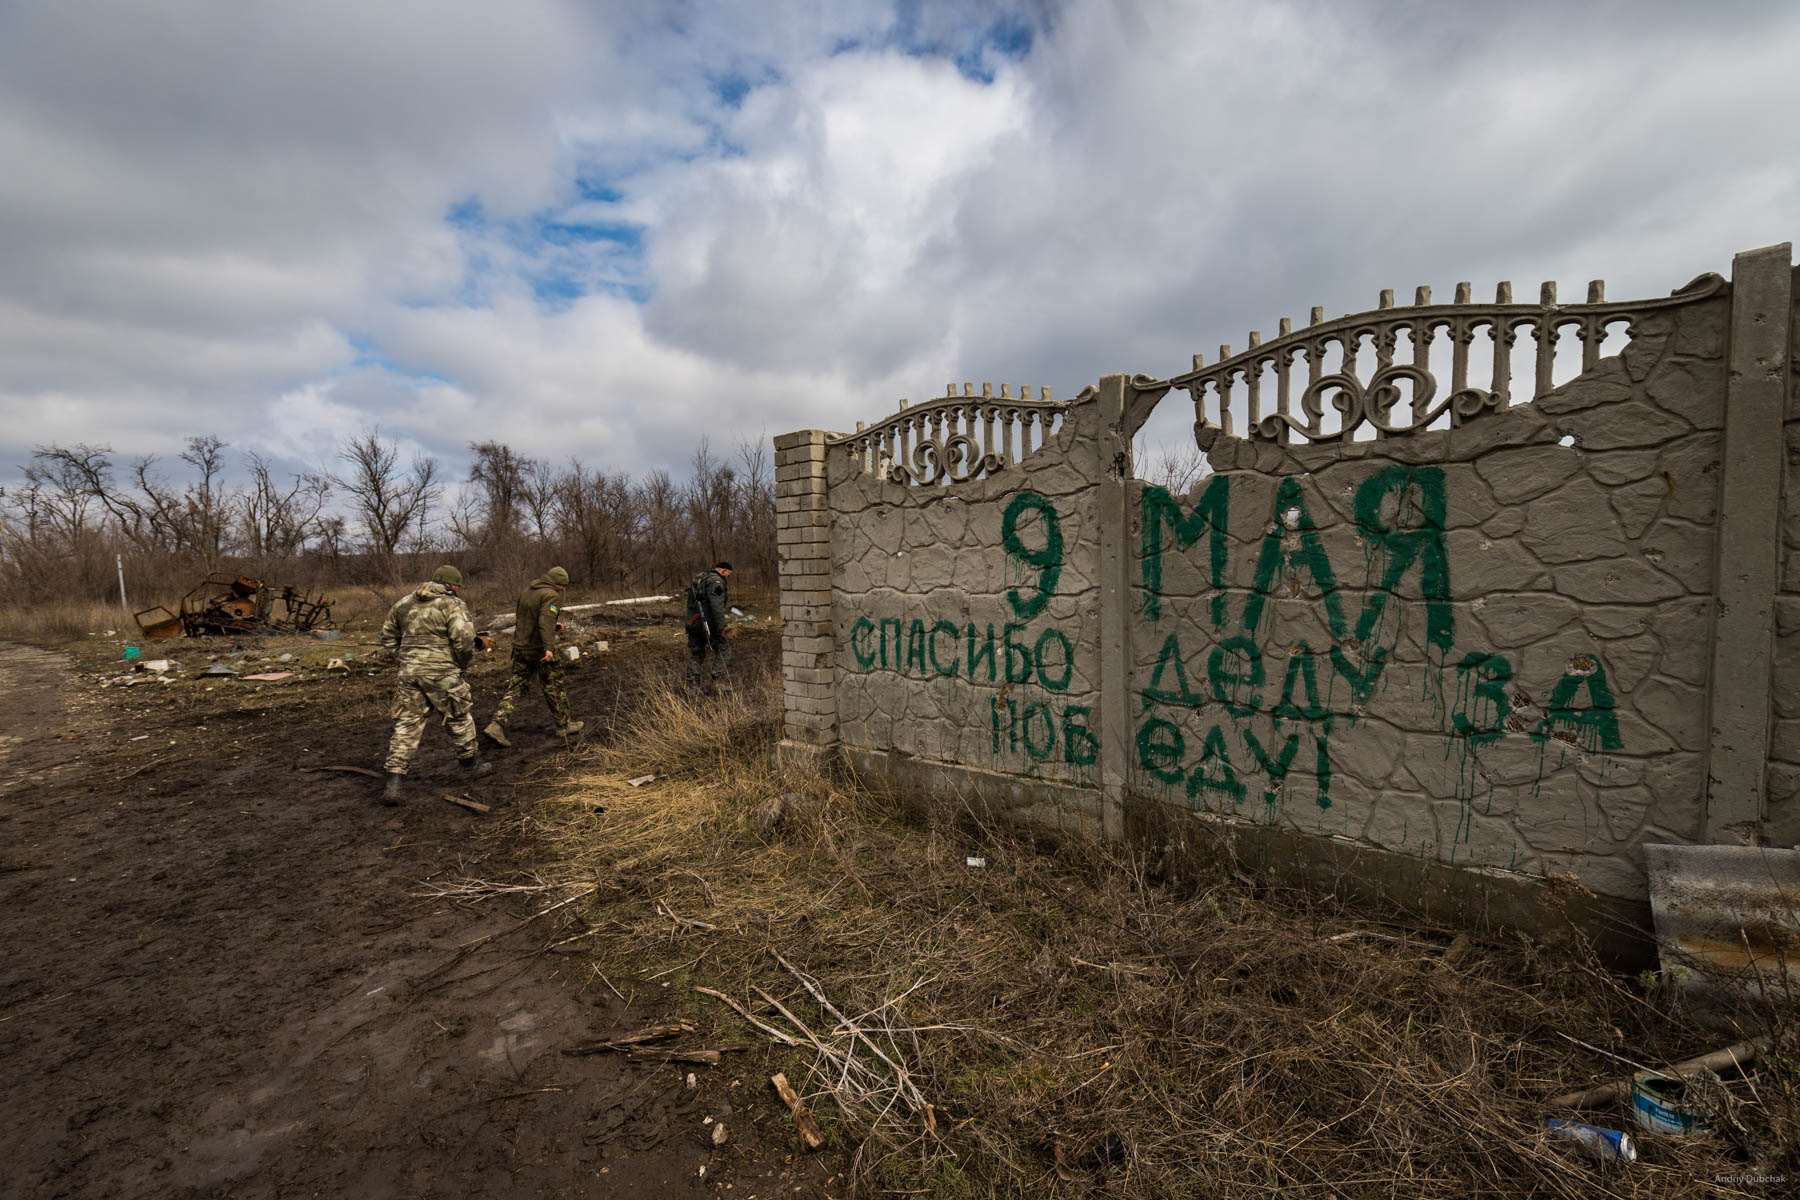 """""""May 9th, thank your grandfather for the victory!"""" - an inscription made by pro-Russian militants in Shirokine, before Ukrainian marines drove them out from the village in 2016. Currently, the whole of Shirokine is under control of the Ukrainian Army. Enemy positions are several hundred meters away from the village. Shirokine, March 2018."""